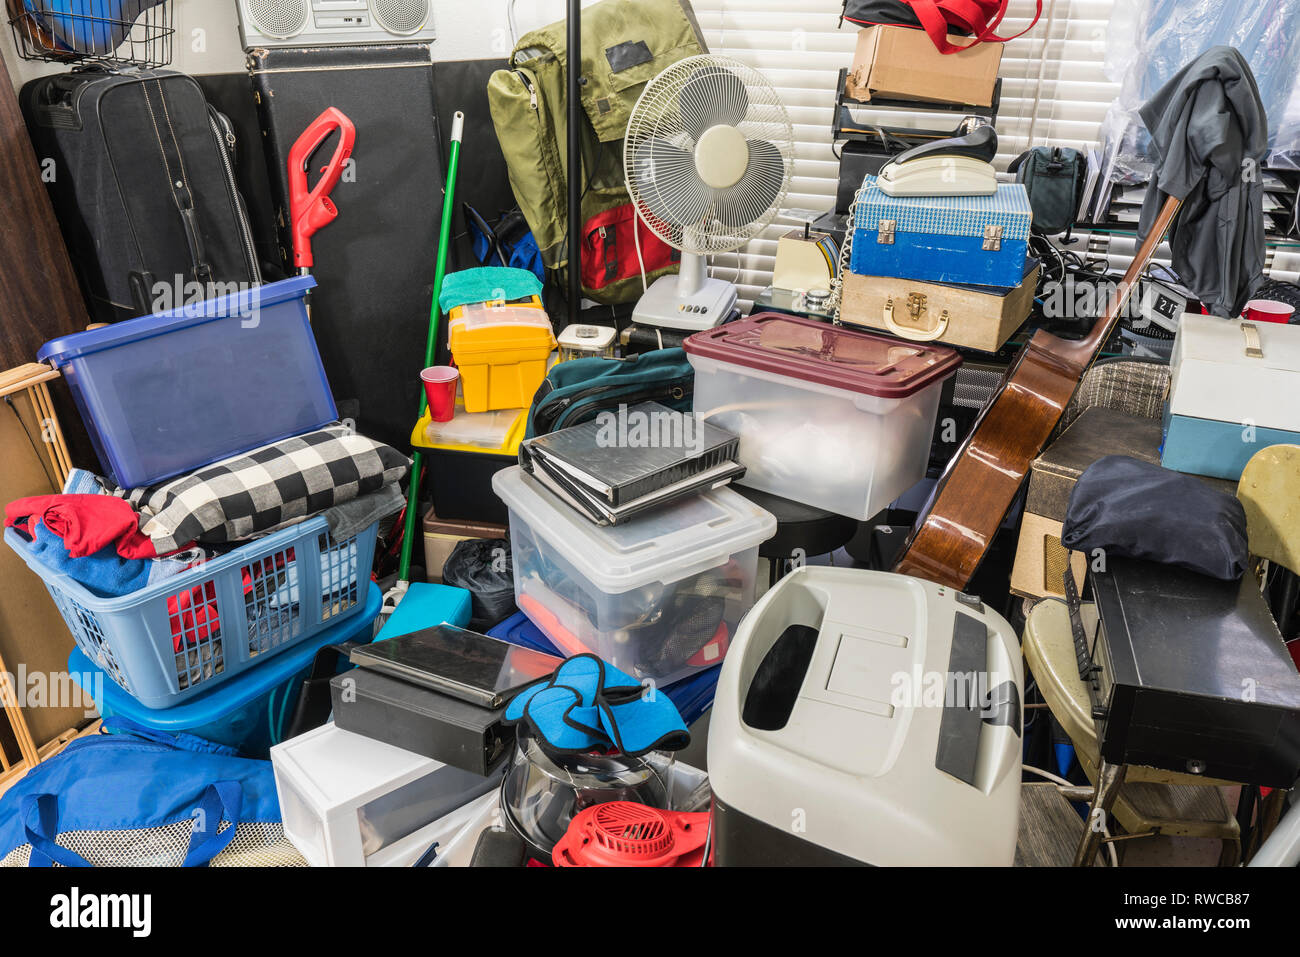 Hoarder home packed with stored boxes, vintage electronics, files, business equipment and household items. - Stock Image